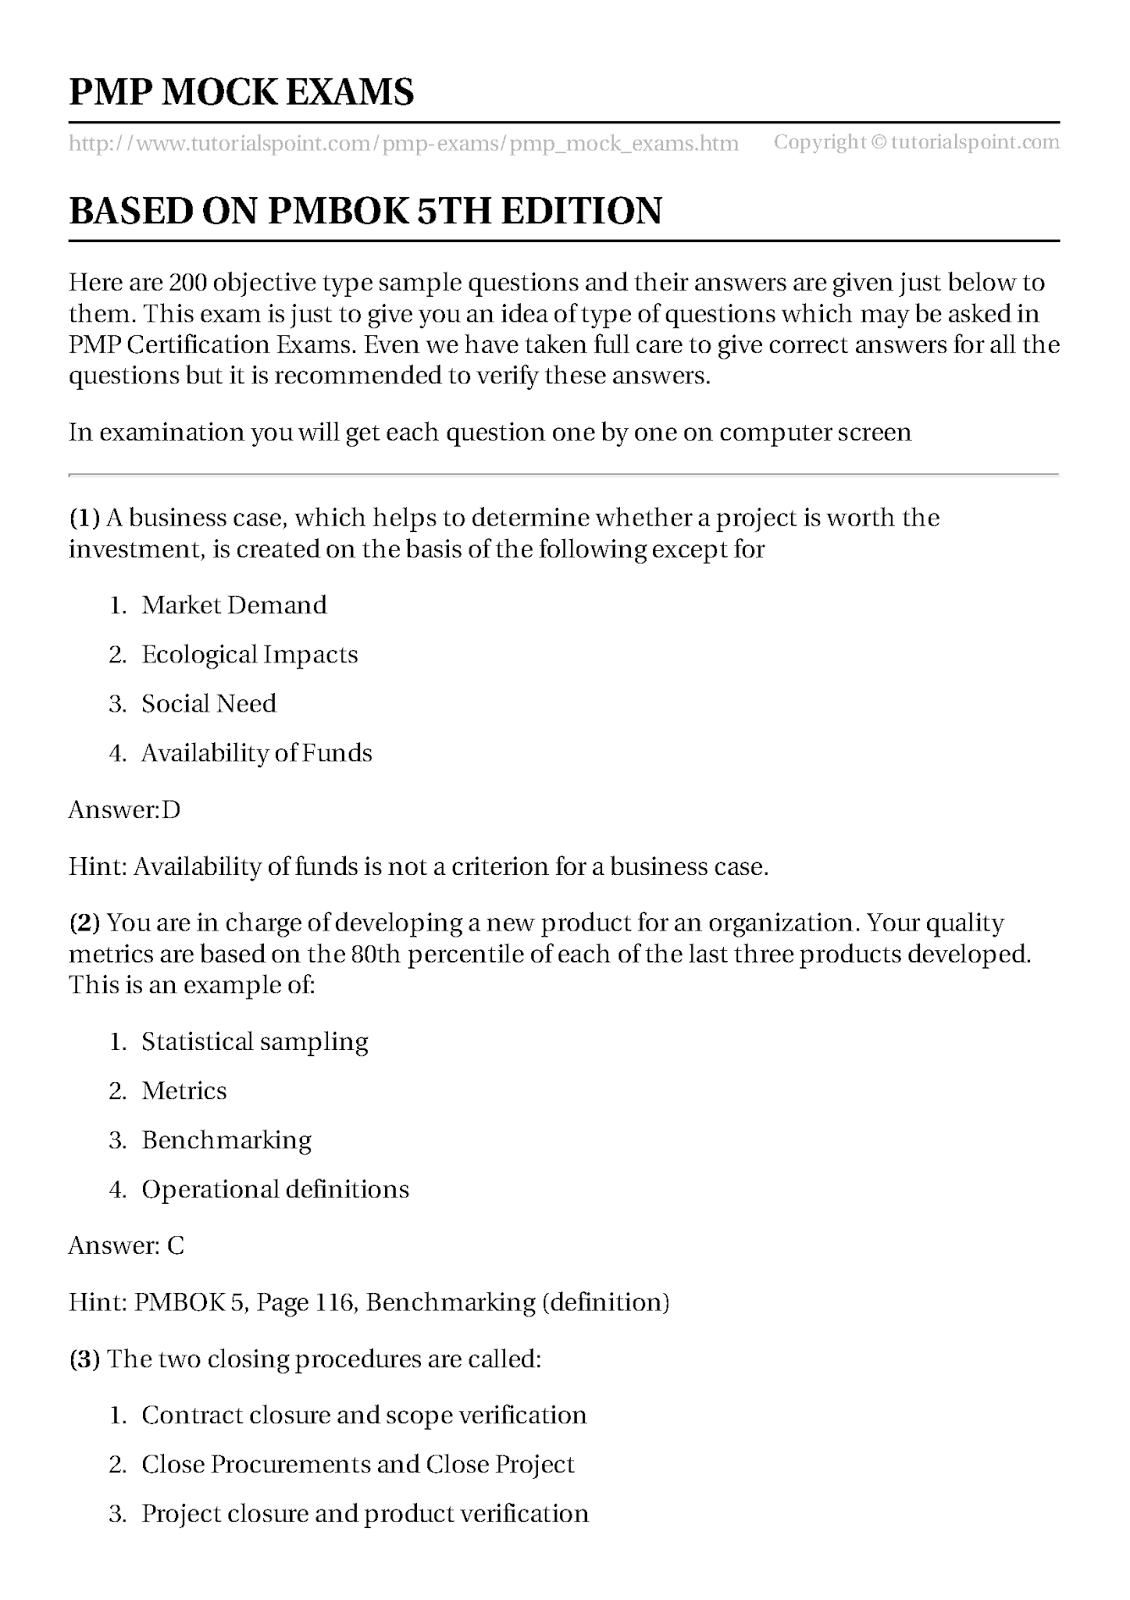 Pmp sample questions based on pmbok engineering management here are 200 more objective type sample questions and their answers are given just below to them this exam is just to give you an idea of type of questions fbccfo Images